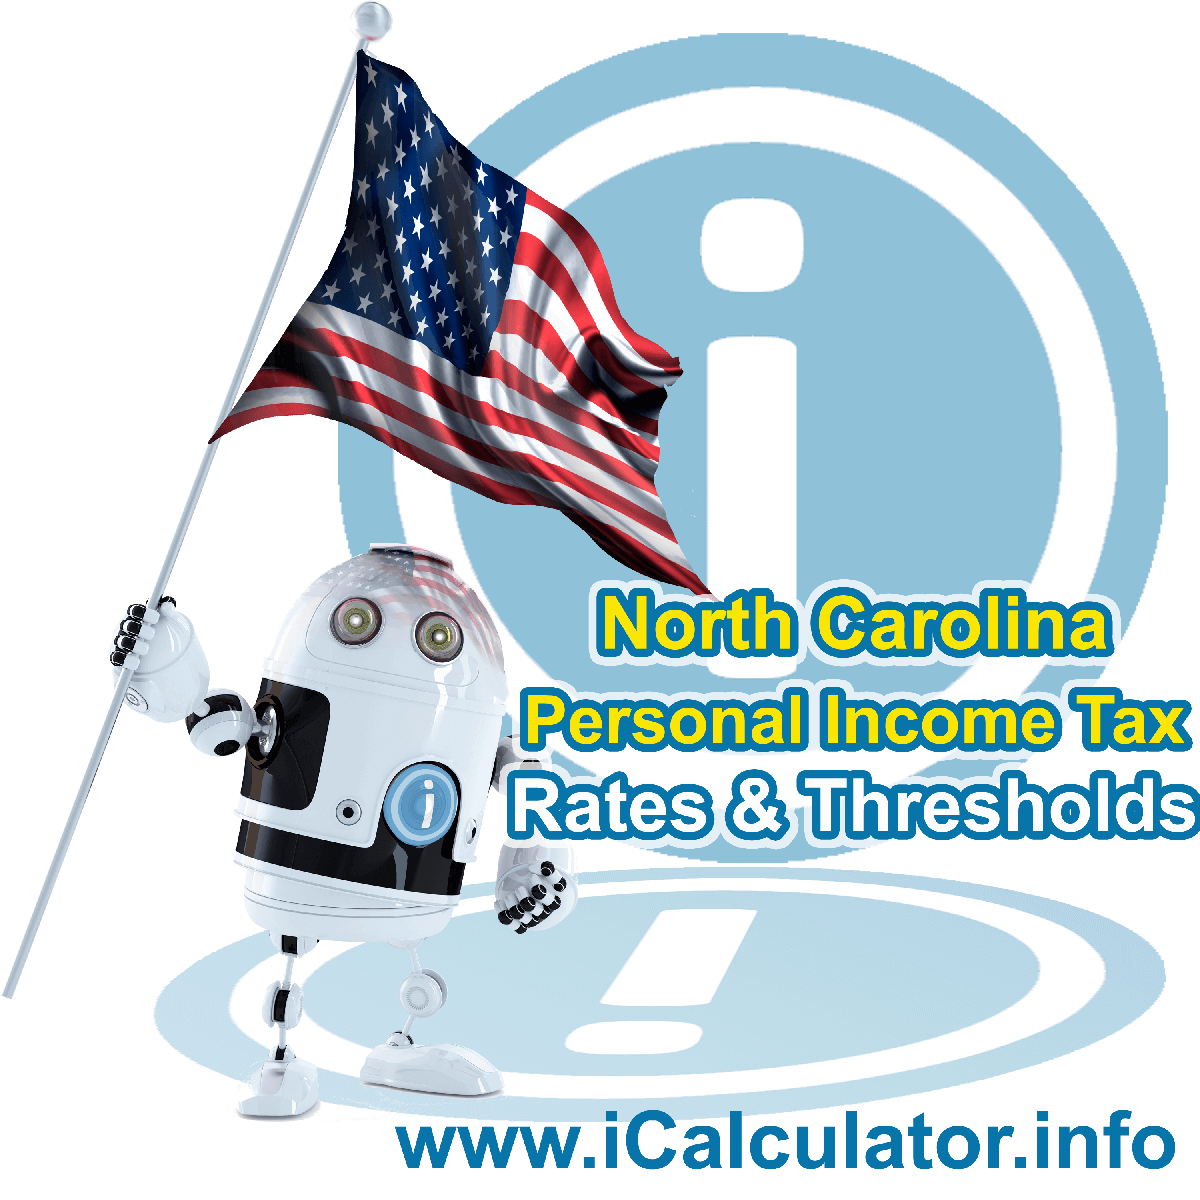 North Carolina State Tax Tables 2017. This image displays details of the North Carolina State Tax Tables for the 2017 tax return year which is provided in support of the 2017 US Tax Calculator